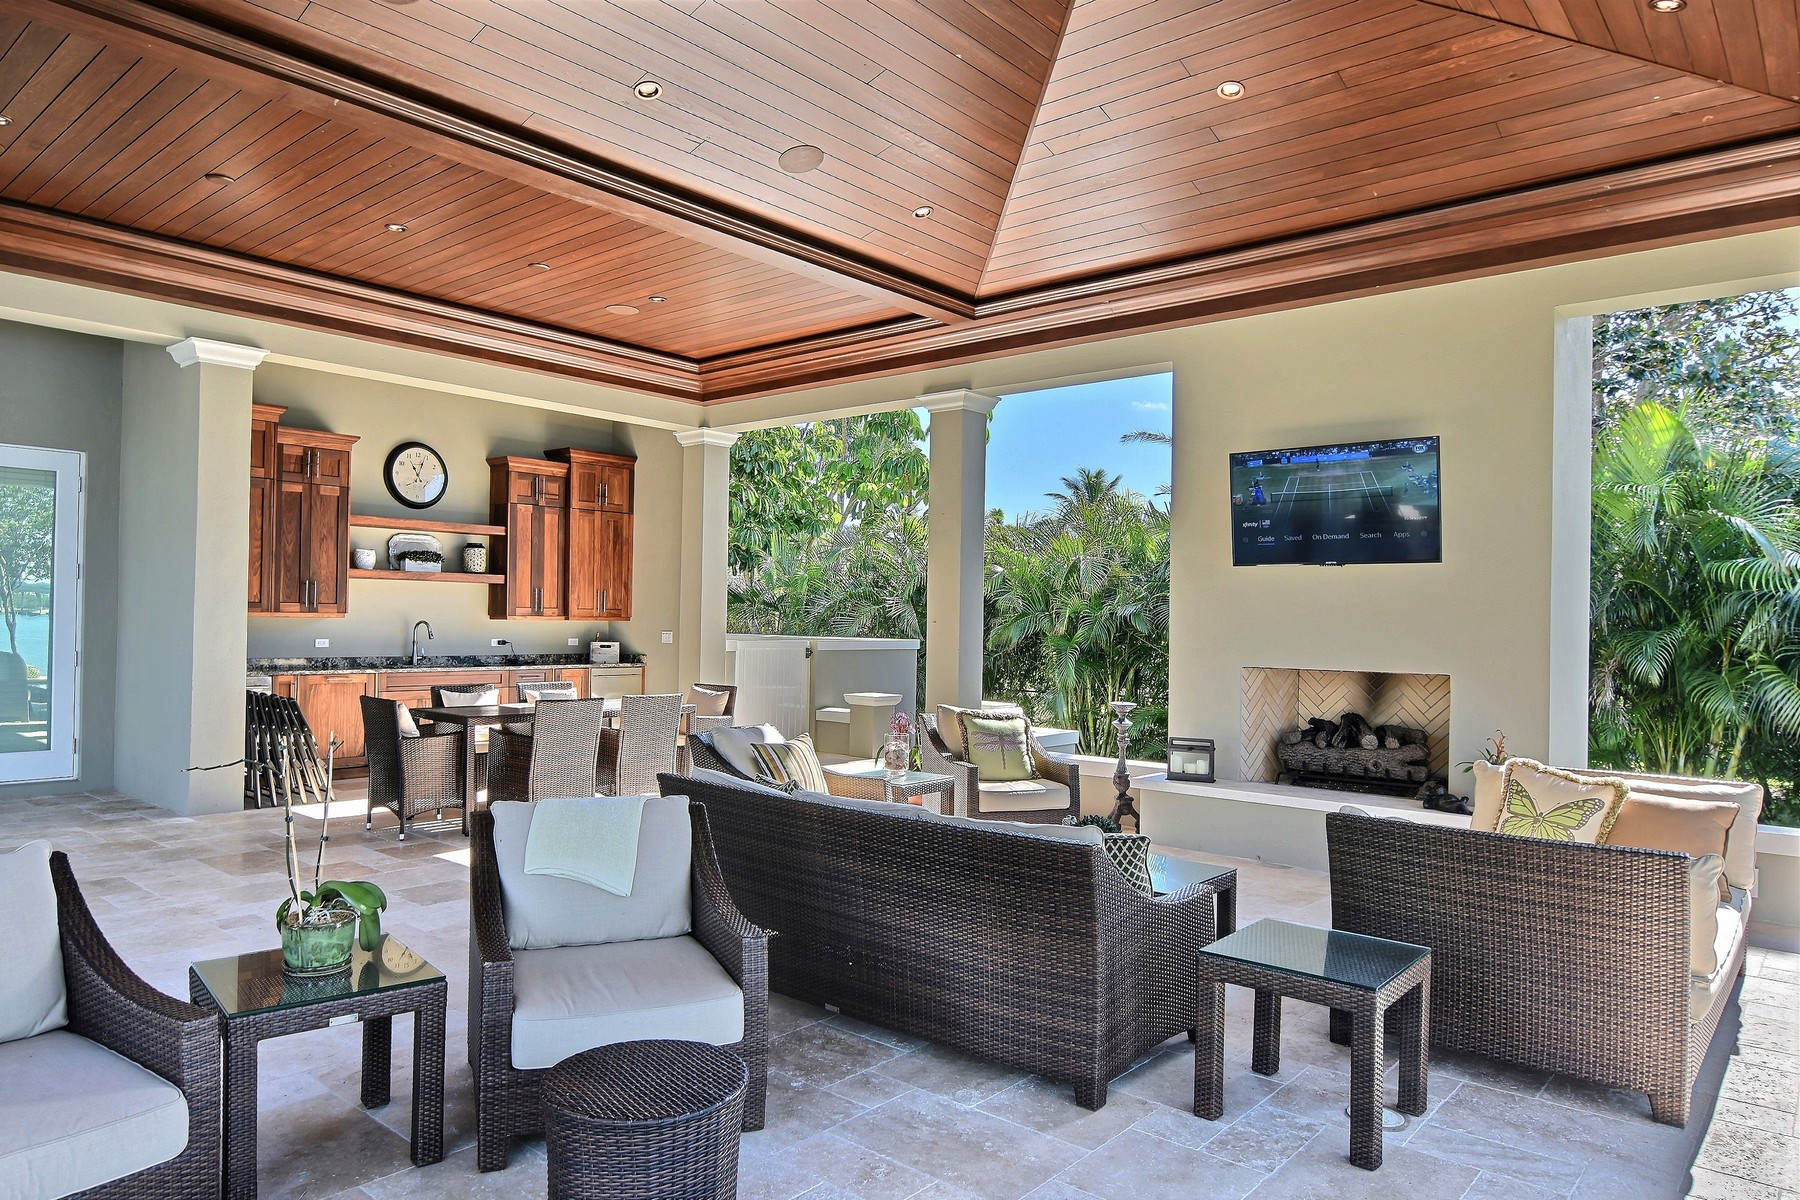 Additional photo for property listing at Inarguably the Finest Riverfront Estate in Vero Beach 665 Lake Drive Vero Beach, Florida 32963 United States